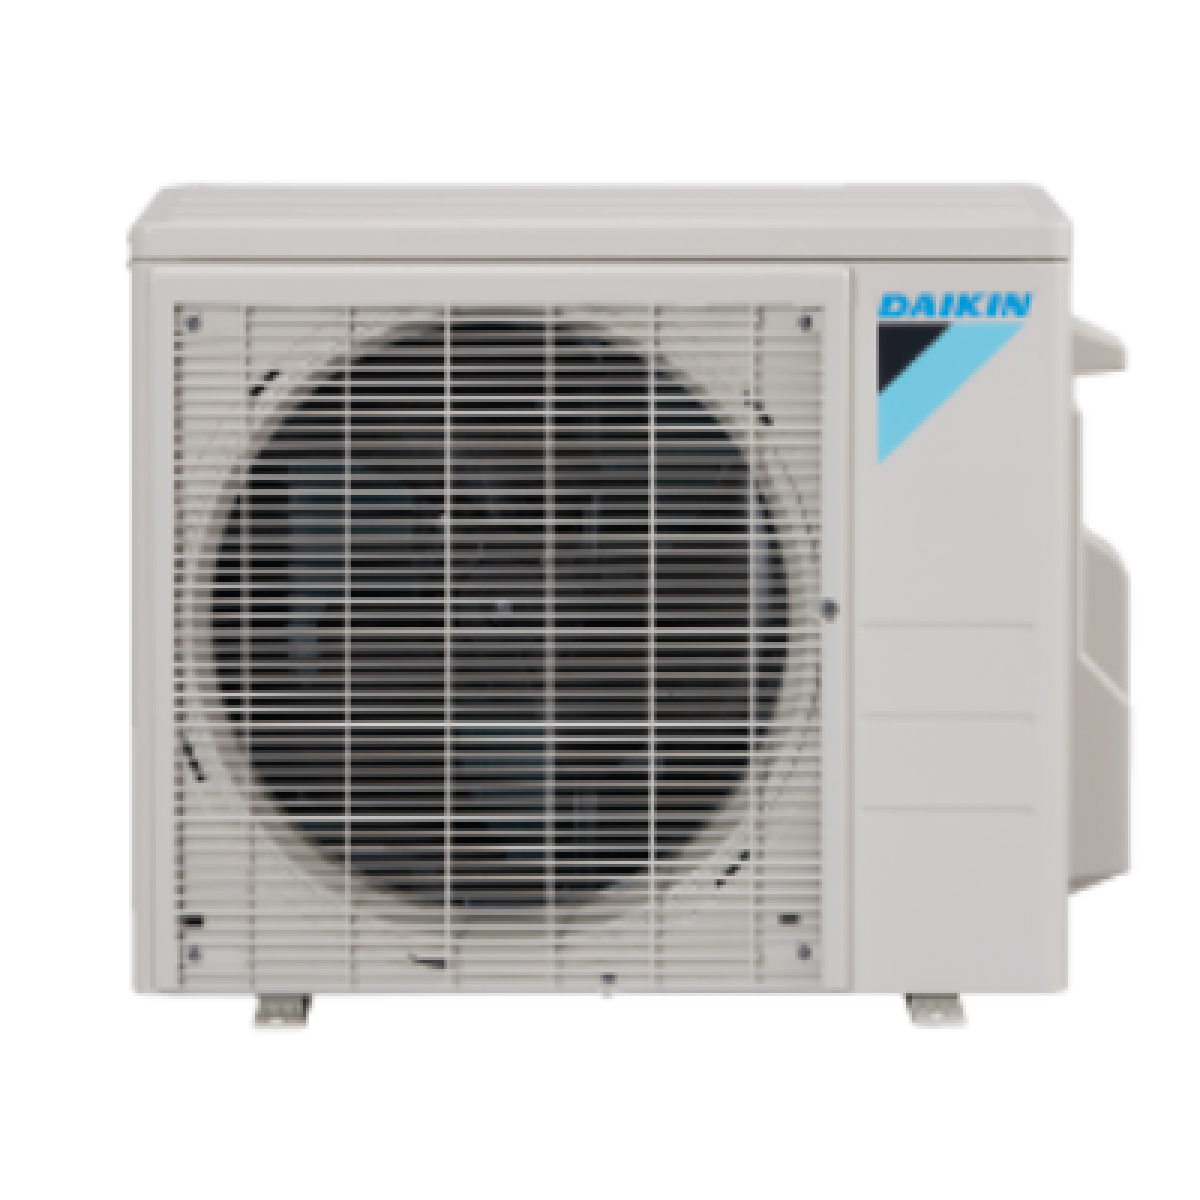 #1E82AD Daikin 2 Zone 18K BTU Heat Pump System In Multi Zone  2017 14422 Two Zone Air Conditioning photo with 1200x1200 px on helpvideos.info - Air Conditioners, Air Coolers and more